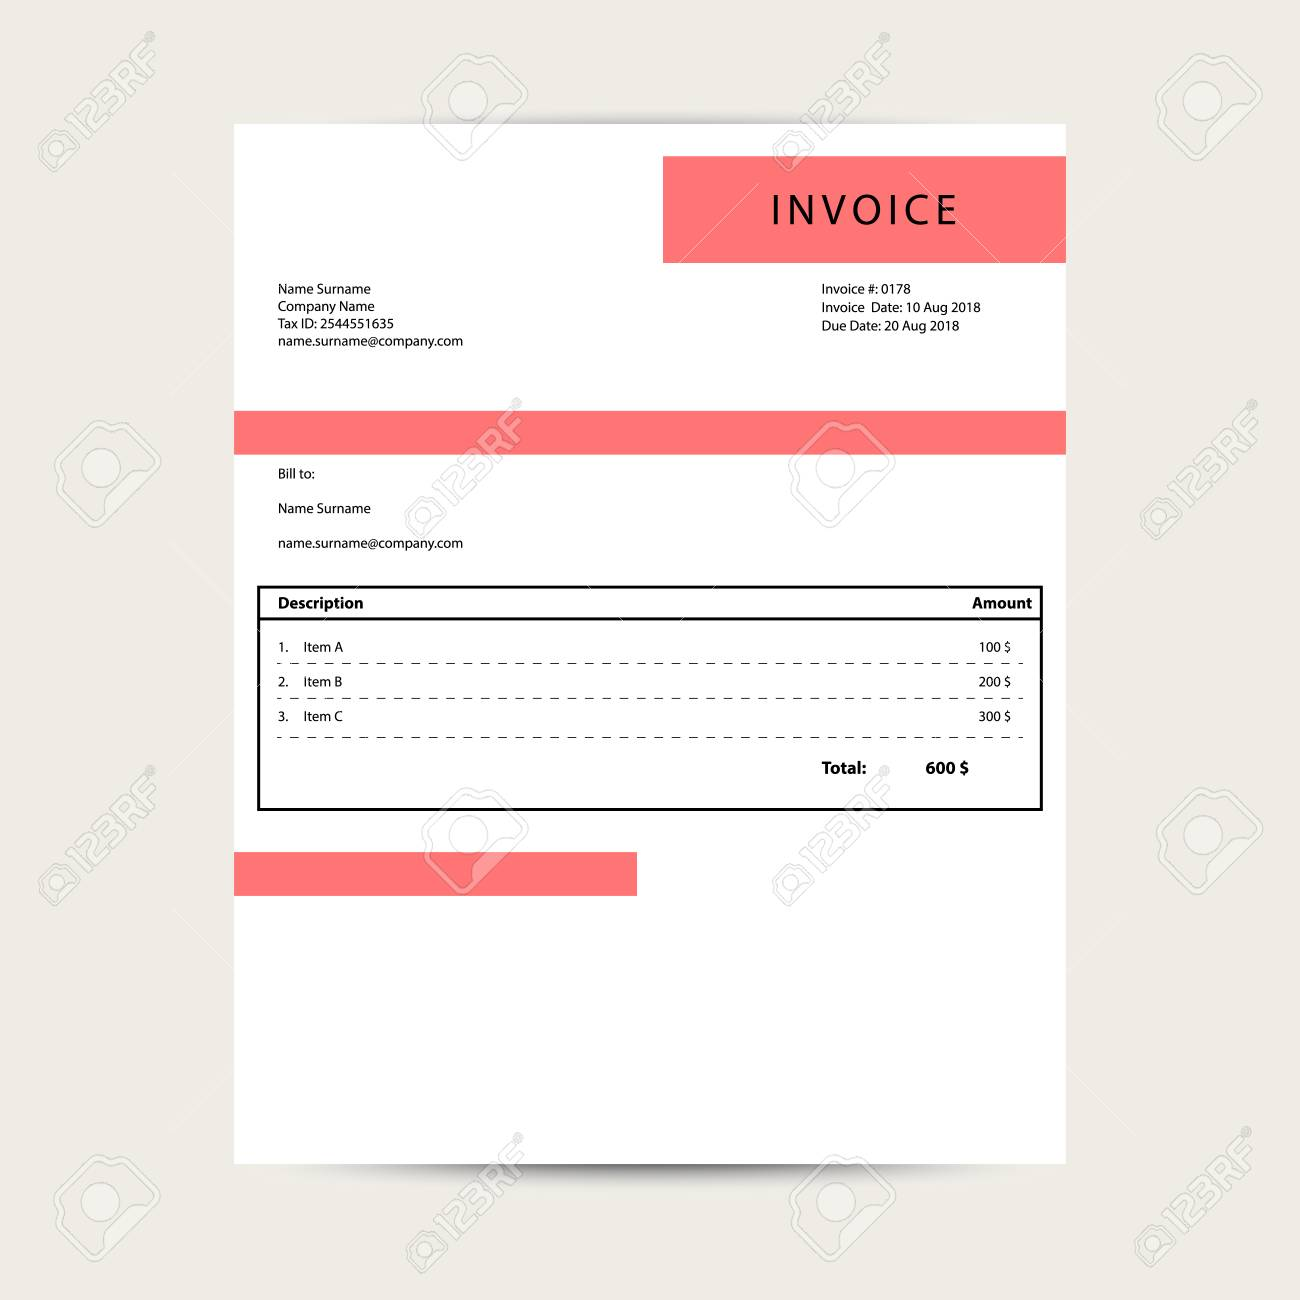 Minimal Invoice Template Vector Simple Bill Document Sample Royalty Free Cliparts Vectors And Stock Illustration Image 106696180